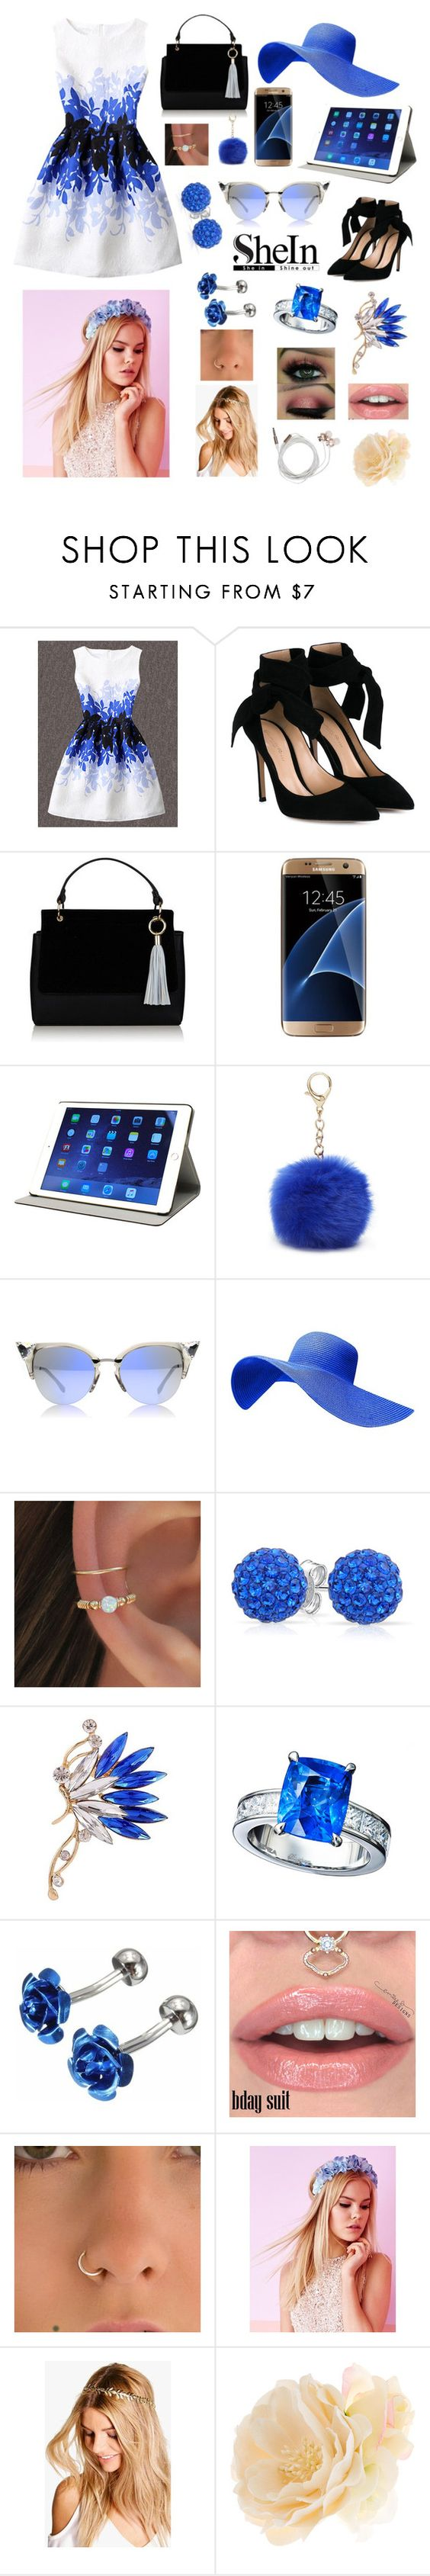 """Blue And Black"" by kaileewhaley13 ❤ liked on Polyvore featuring WithChic, Gianvito Rossi, Samsung, M-Edge, Nine West, Fendi, Bling Jewelry, Lipsy, Boohoo and Accessorize"